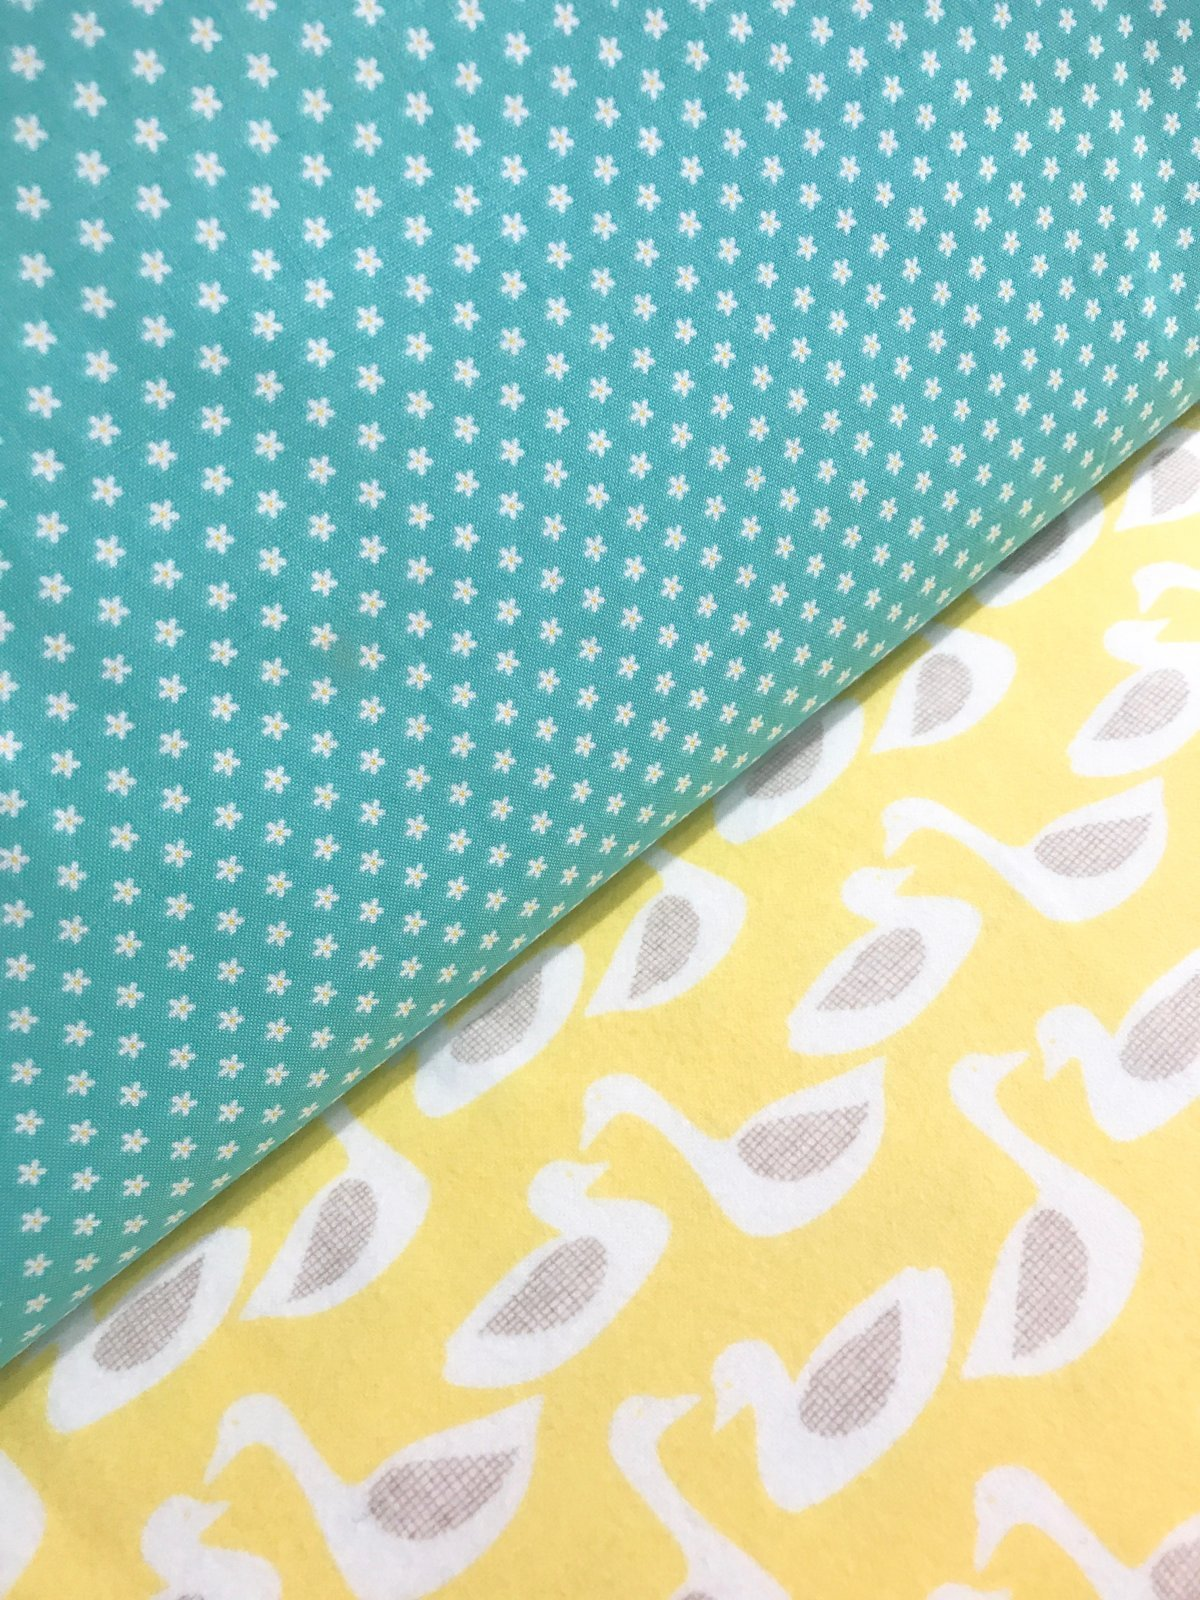 Surgical Mask Kit - CHILDREN'S SIZE Teal Daisies/Yellow Ducks WITH ELASTIC